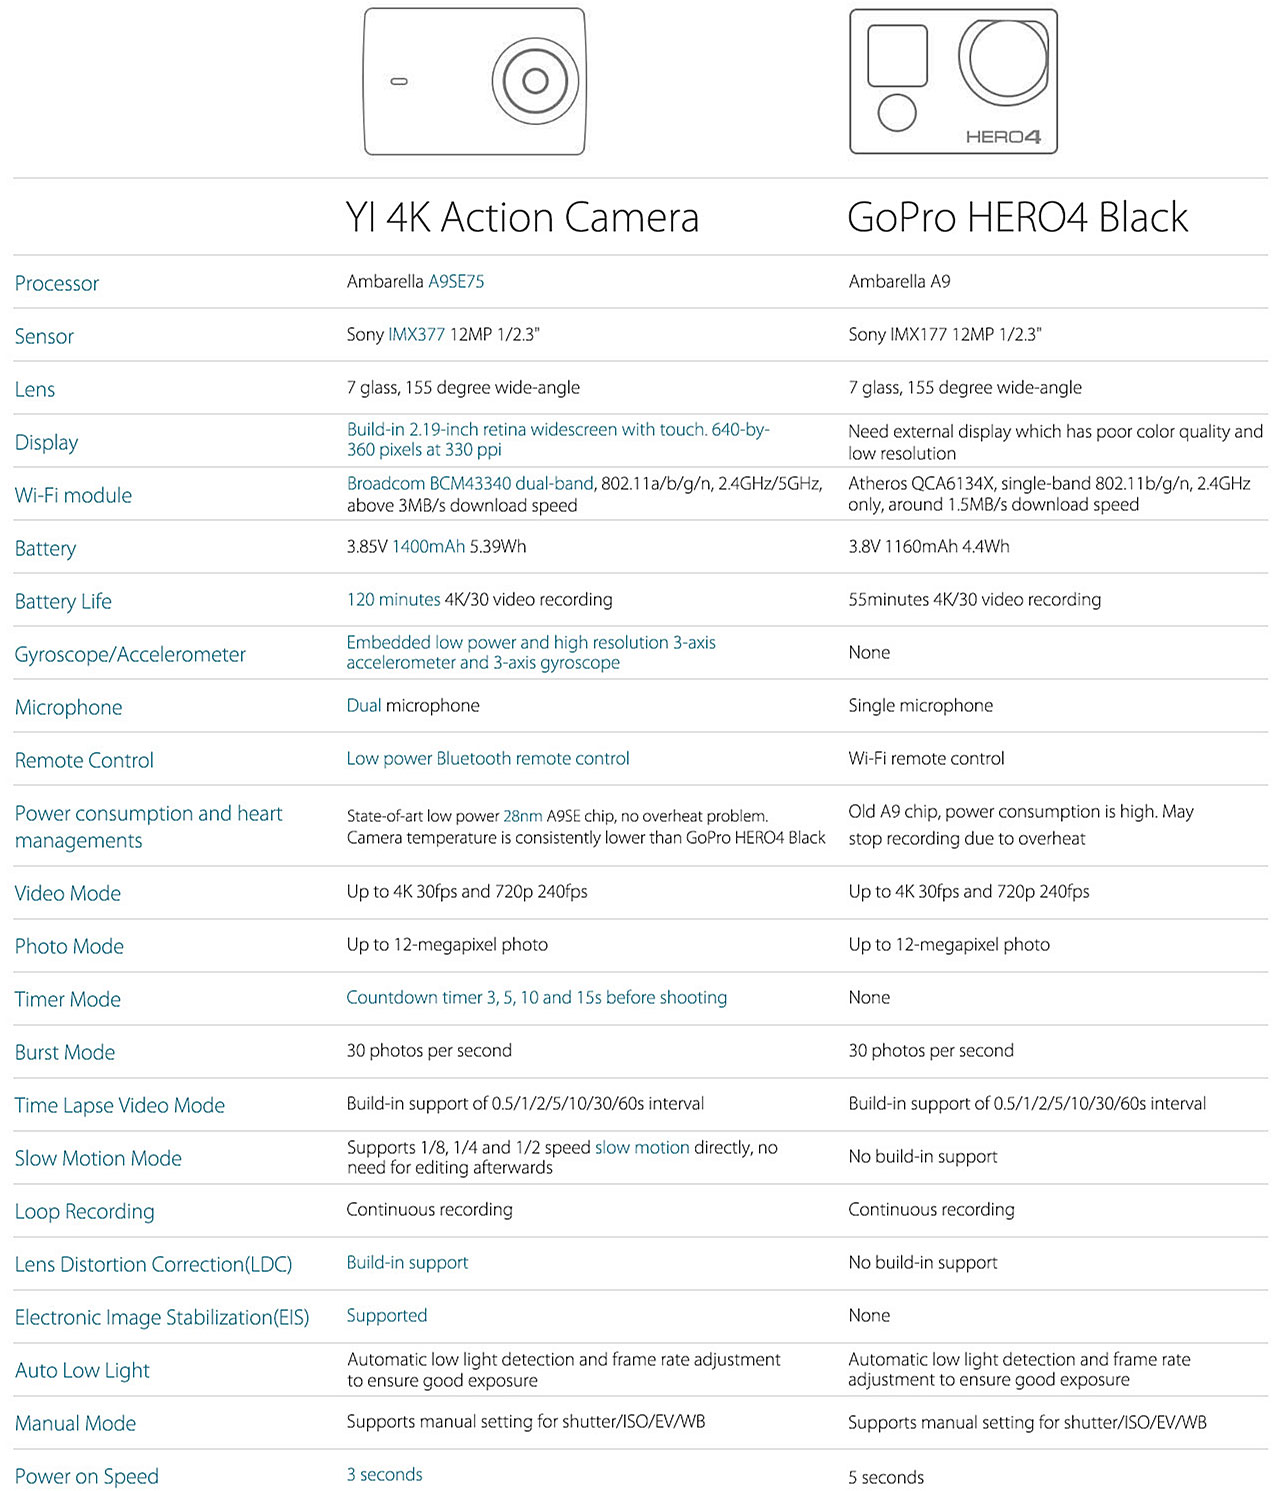 Yi 4K Action Camera vs. GoPro Hero 4 Comparison